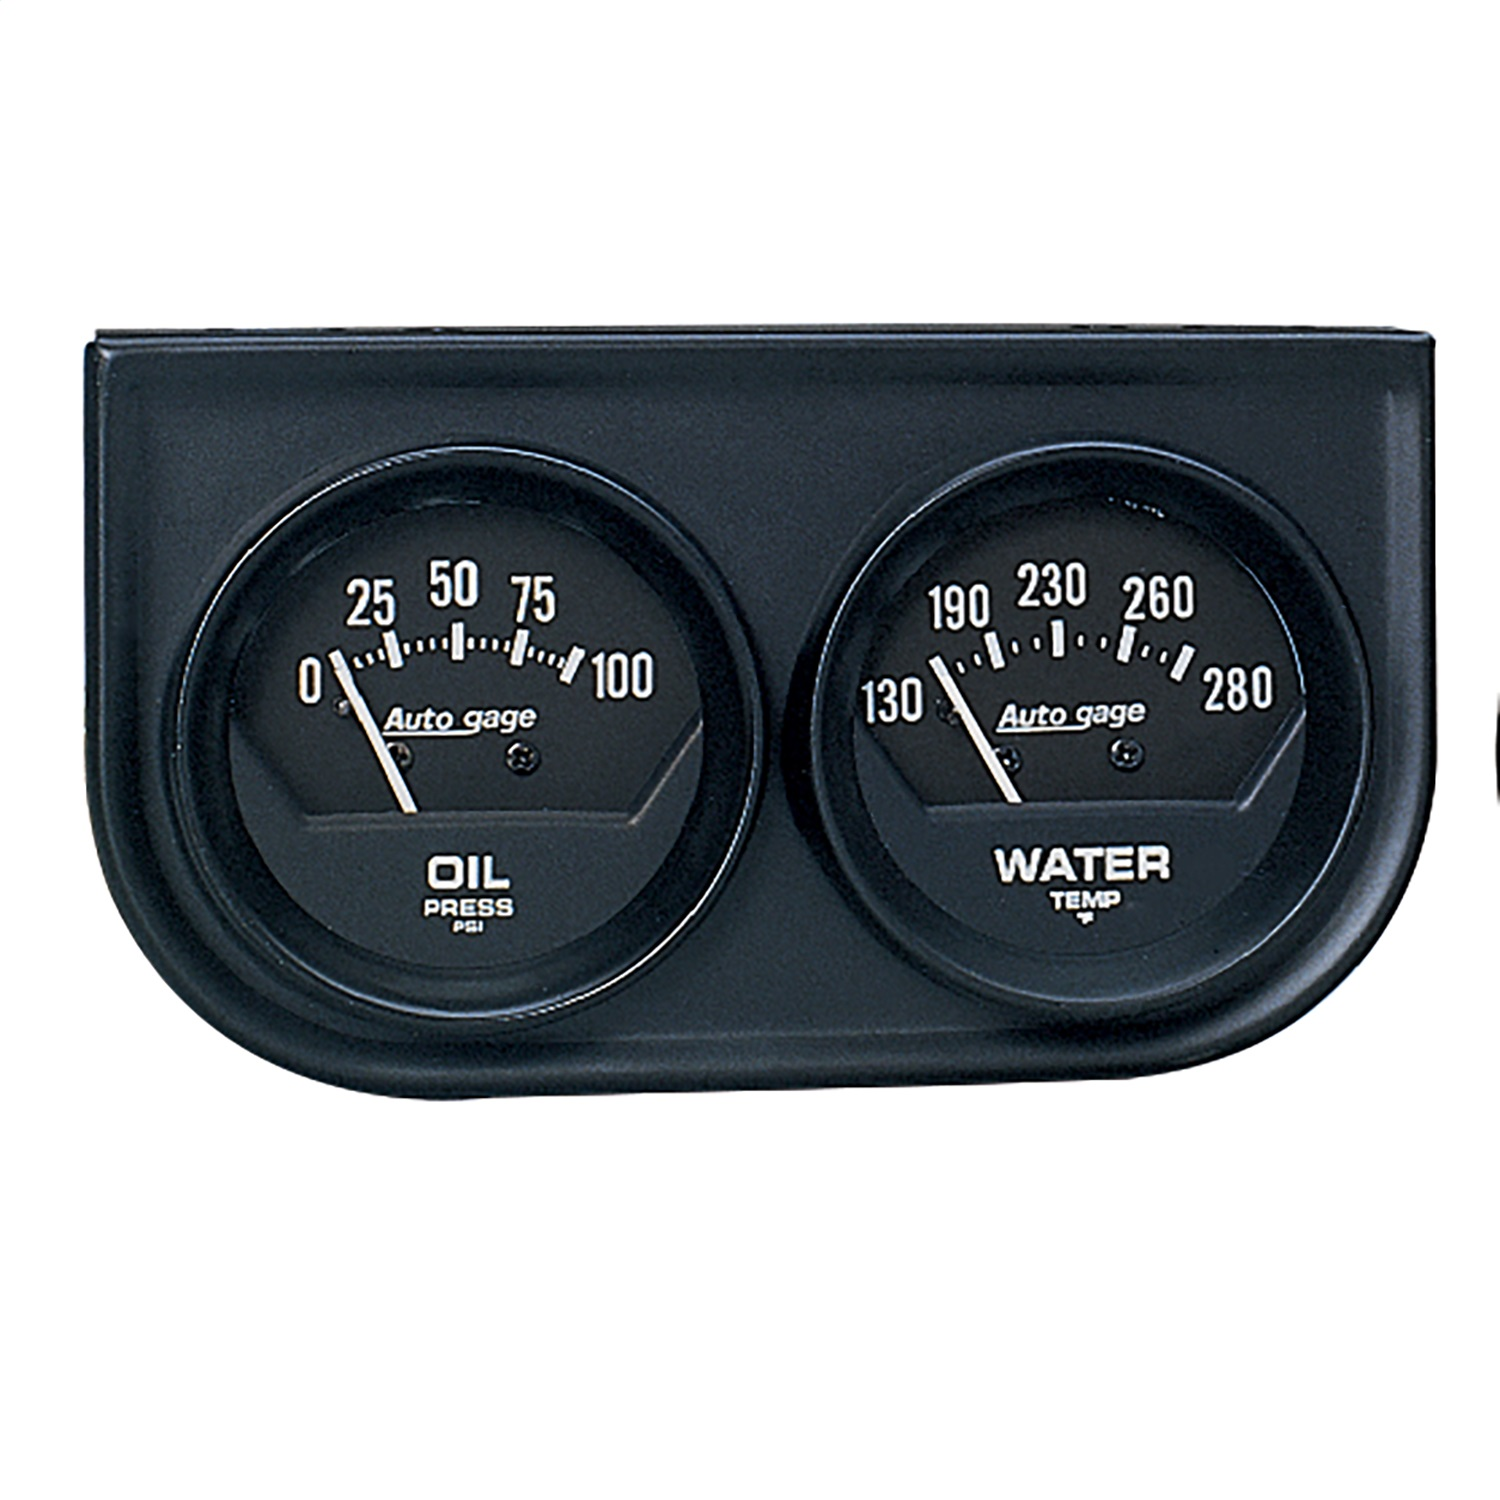 AUTO METER 2345 2IN 2 GAUGE CONSOLE, OIL/ WATER, MECH, BLACK